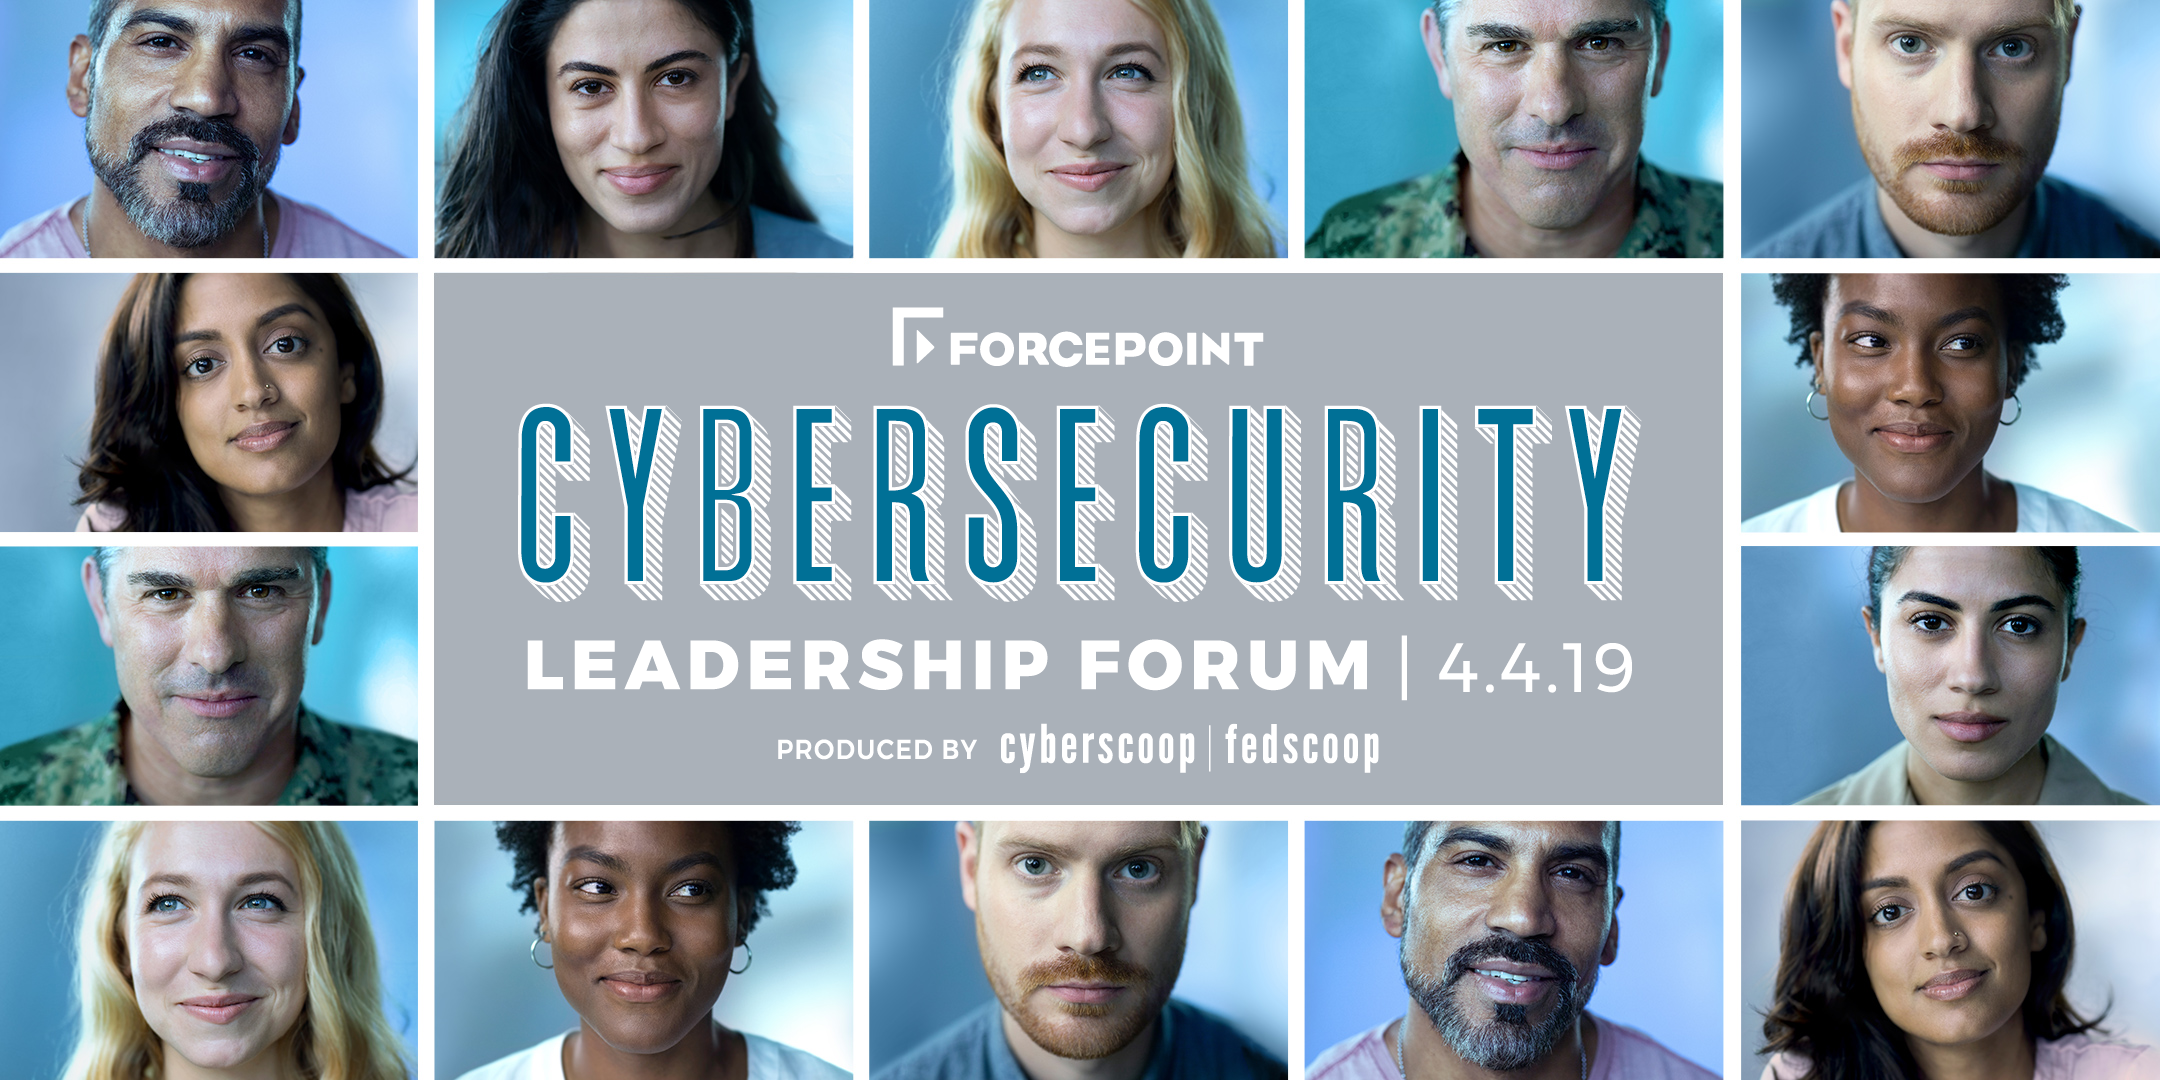 Cybersecurity Leadership Forum